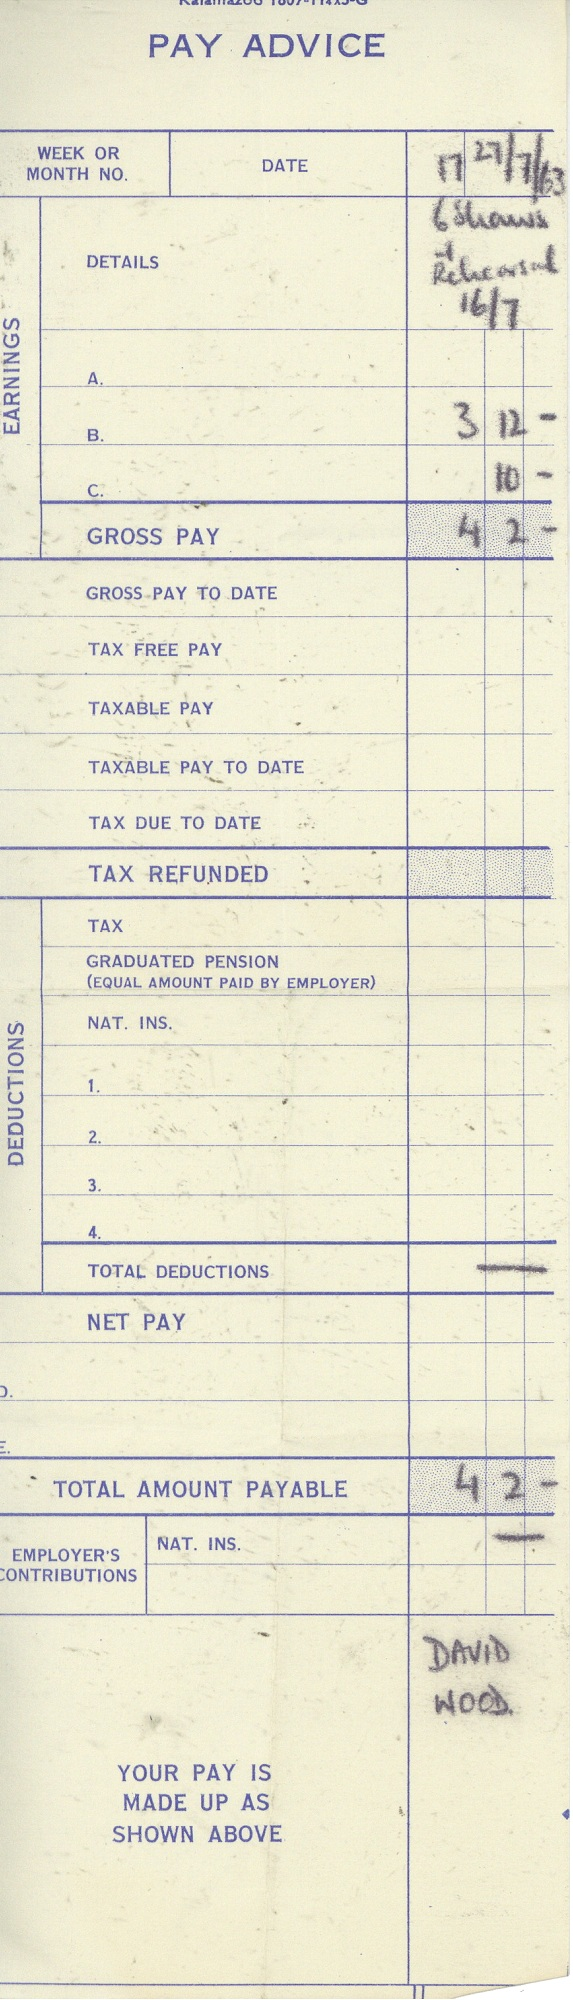 Pay slip - Saint Joan, Workhouse Donke, David Wood - 27 Jul 1963